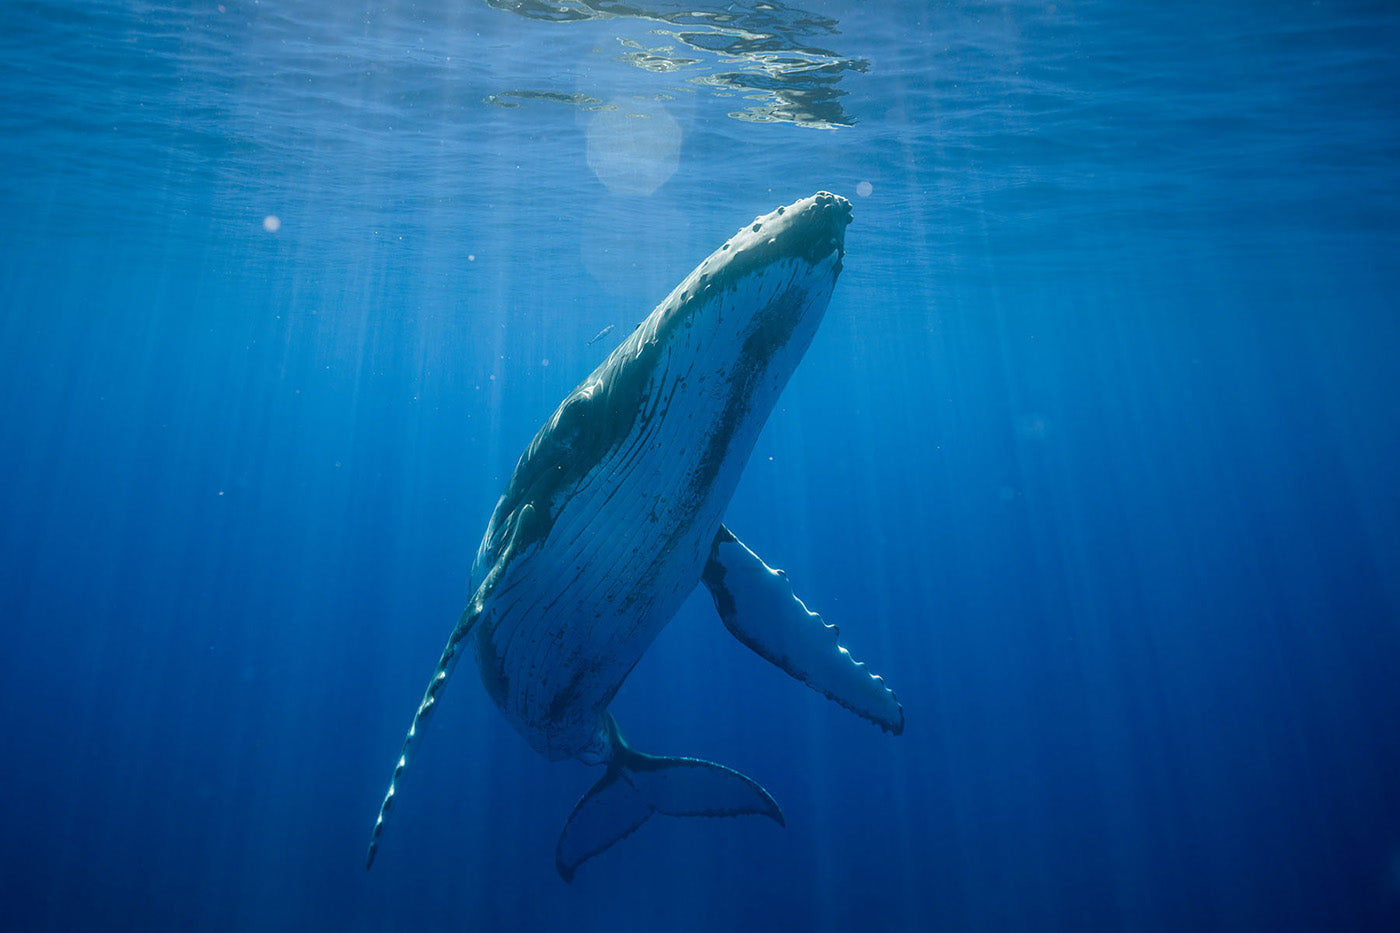 Capturing Whales and Turtles on Hasselblad Medium Format - Karim Iliya